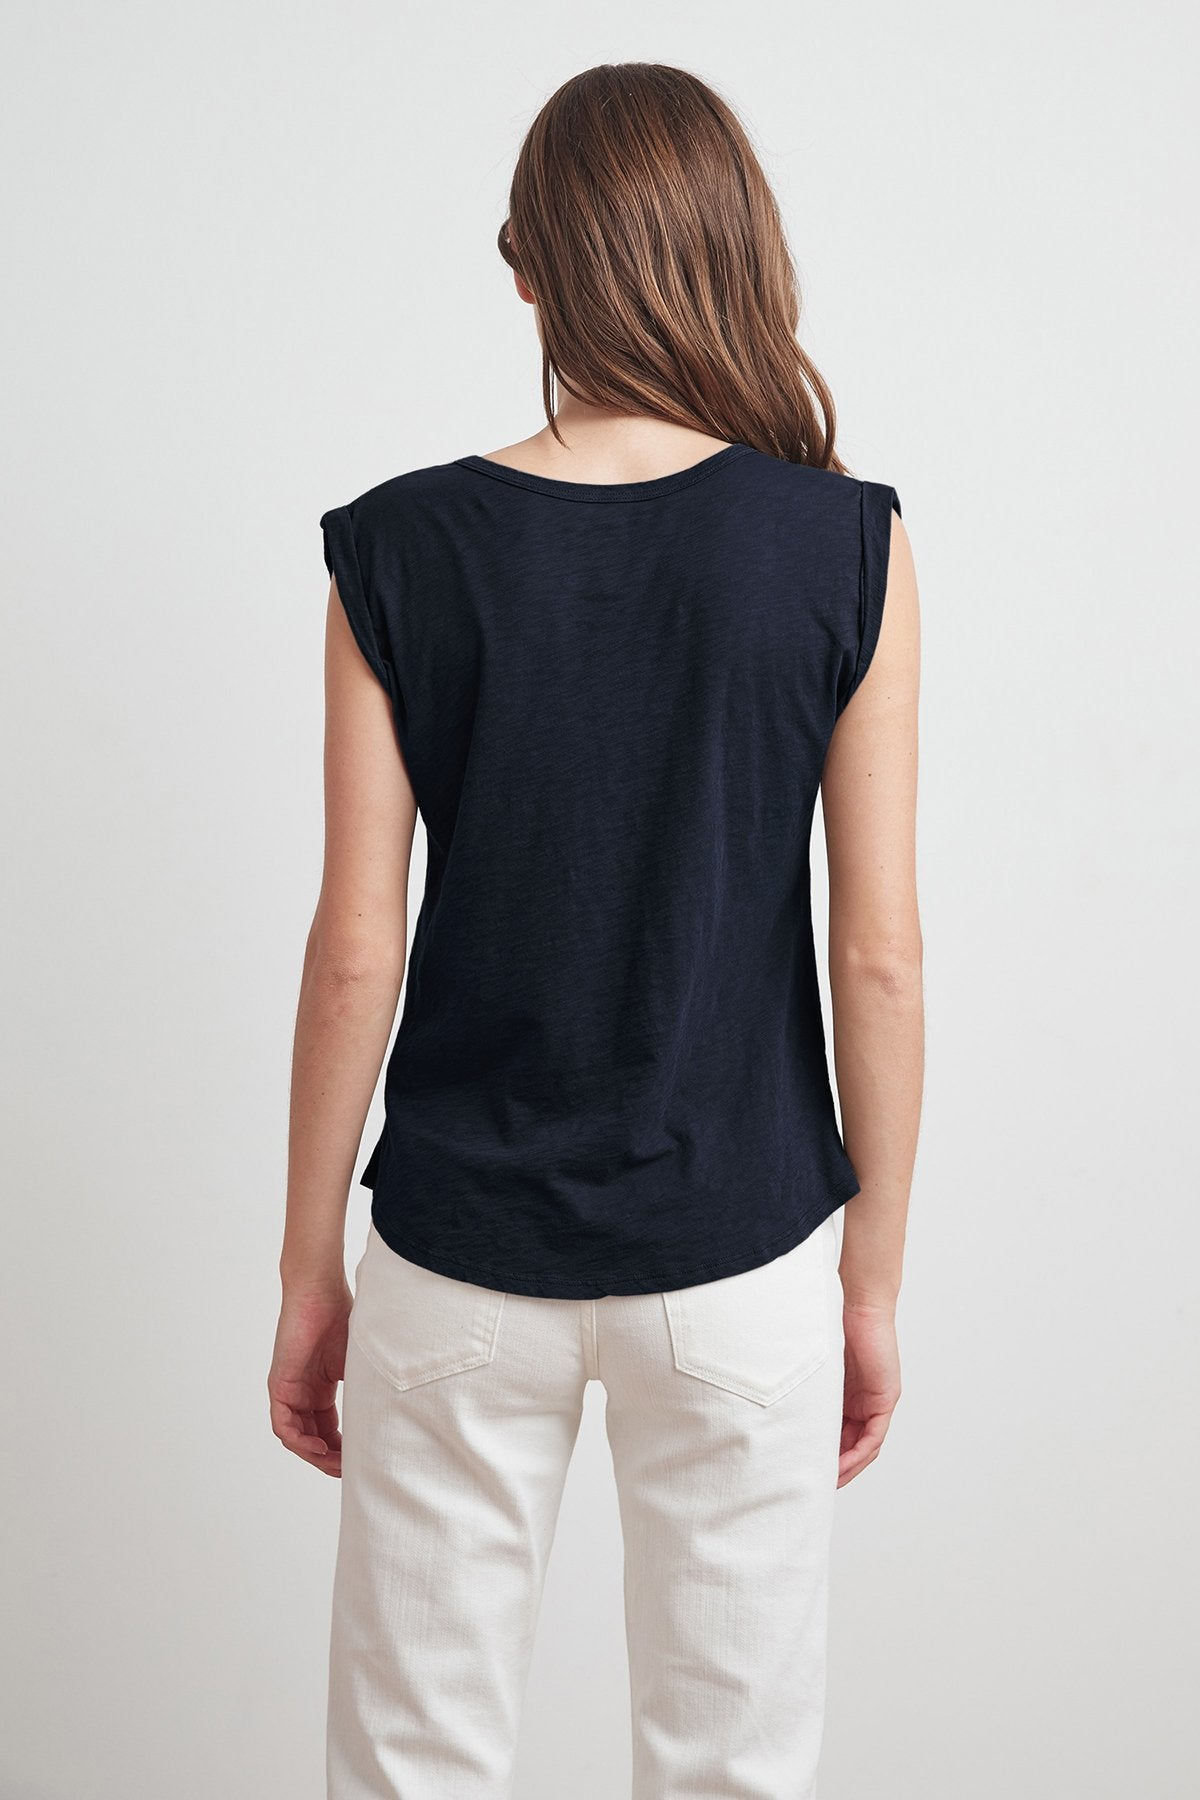 JAYDEN Cotton Slub Scoop Neck Tee